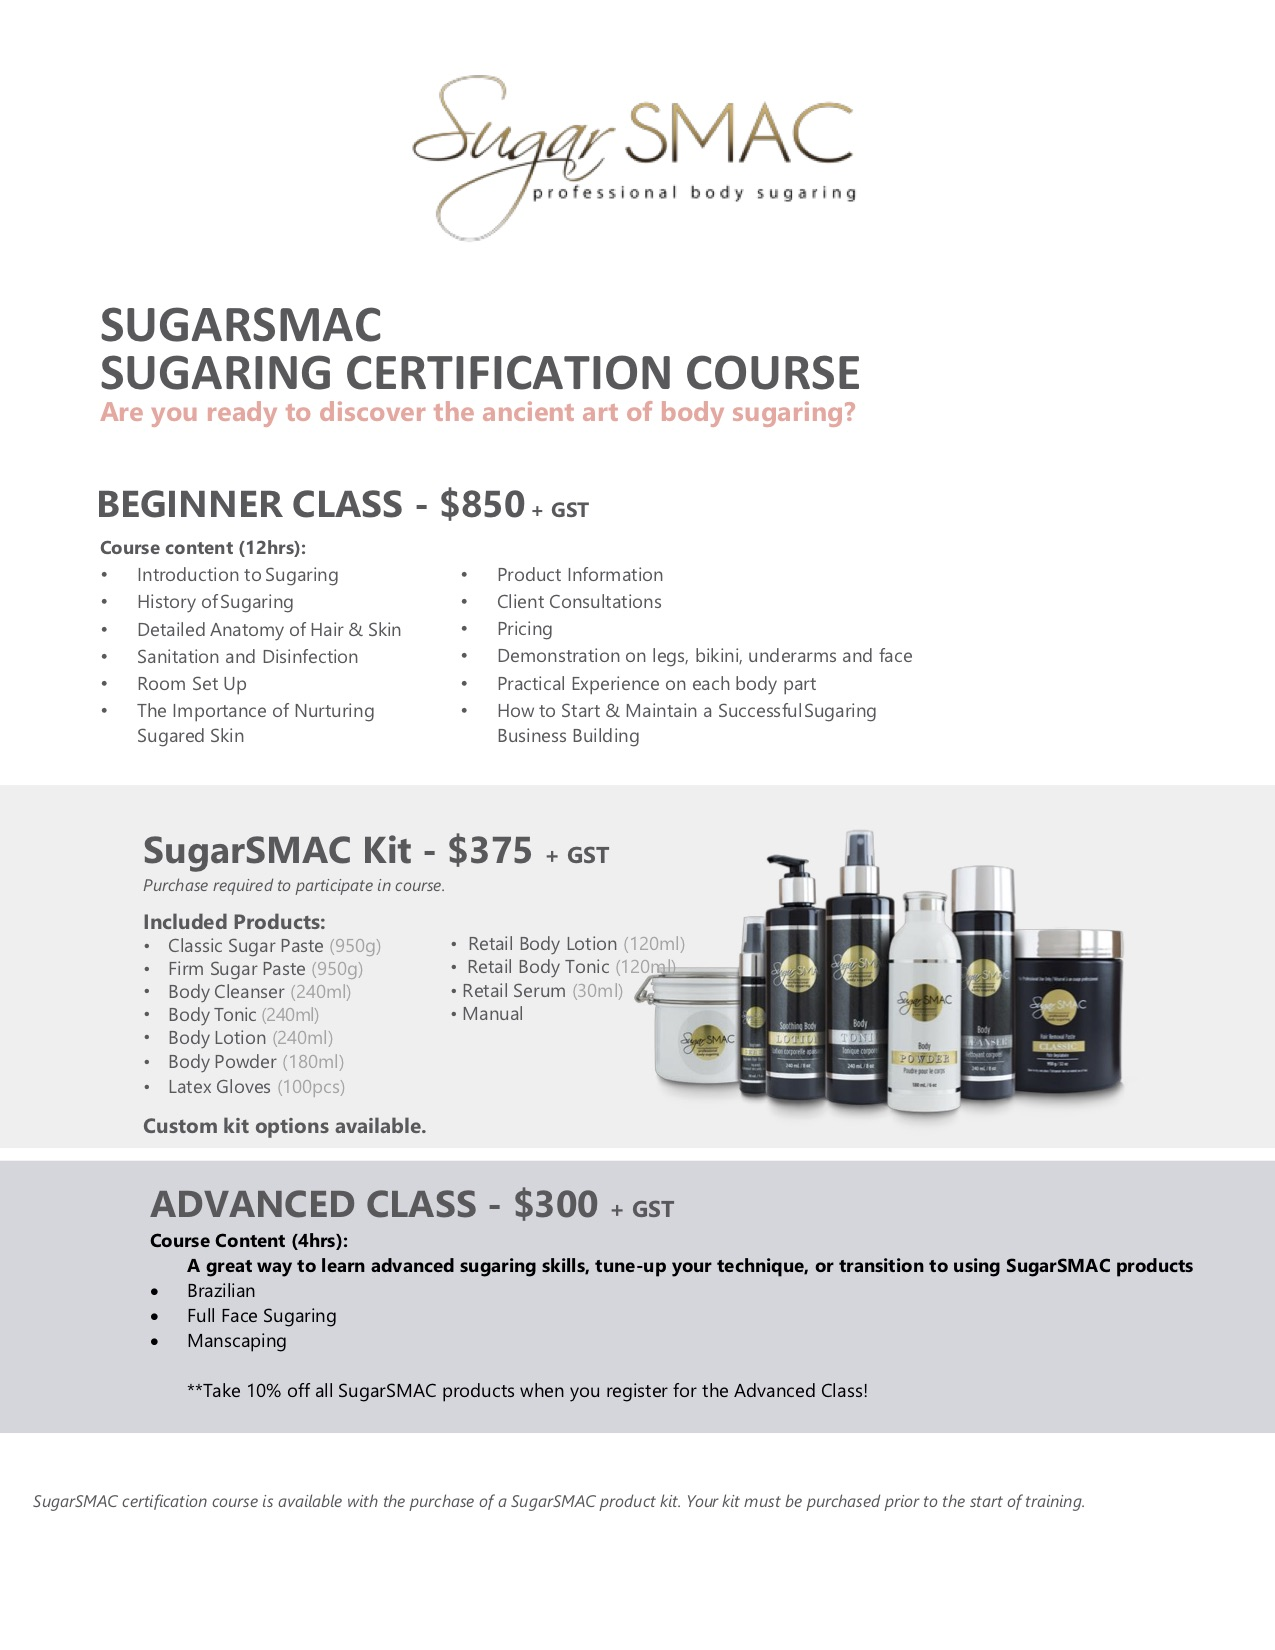 Sugarsmac sugaring certification classes at Blink & Brow Co.